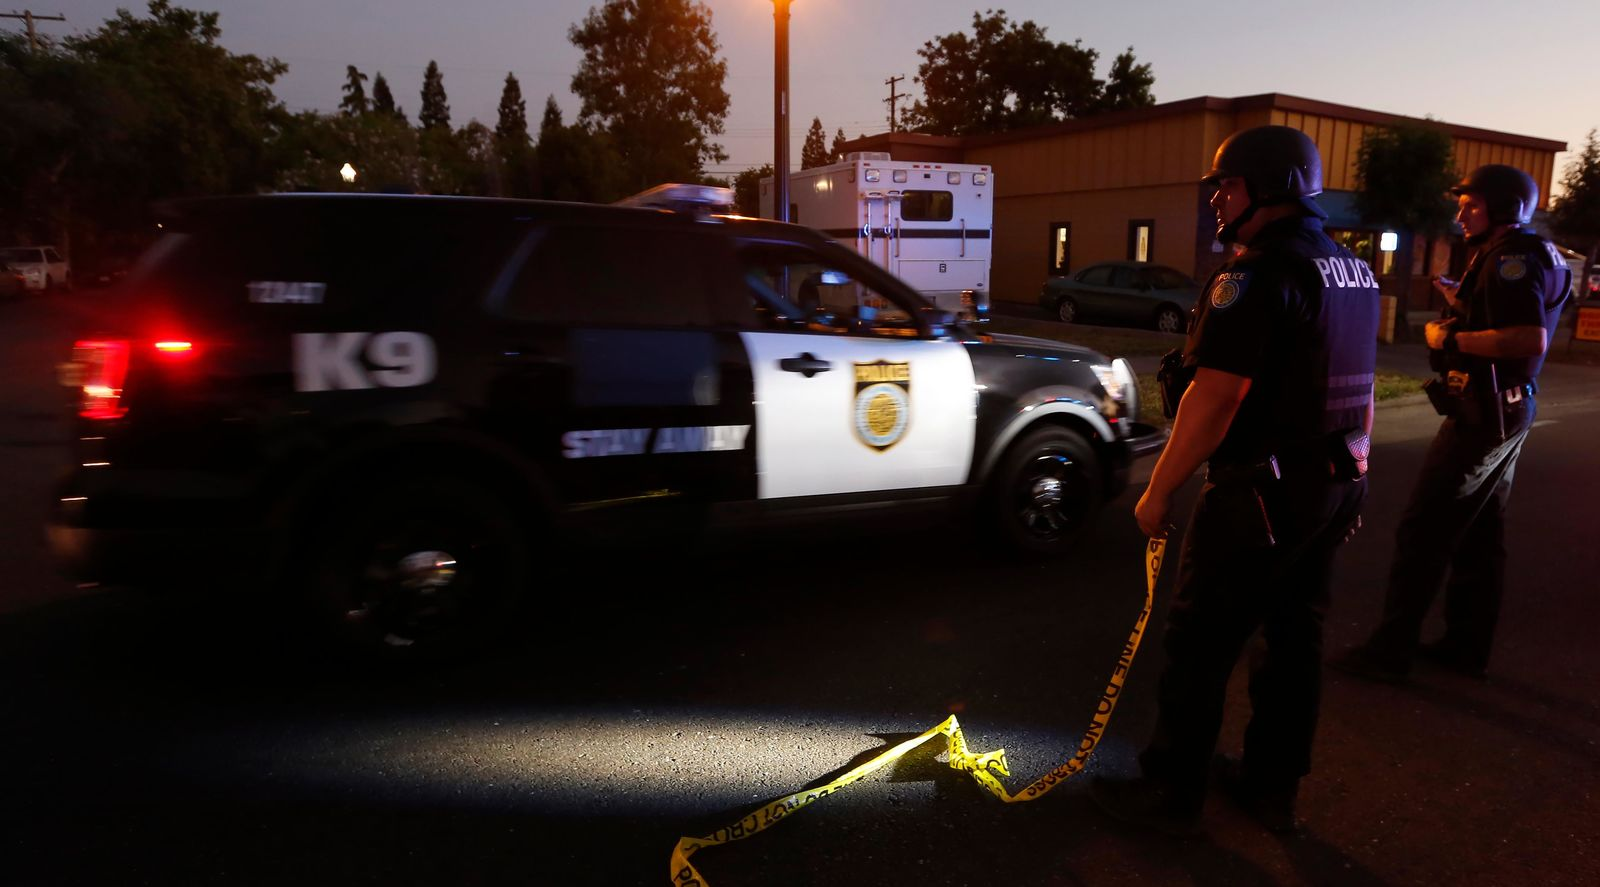 A Sacramento Police vehicle passes a roadblock near a home that authorities have surrounded where an armed suspect has taken refuge after shooting a Sacramento police officer, Wednesday, June 19, 2019, in Sacramento, Calif. (AP Photo/Rich Pedroncelli)